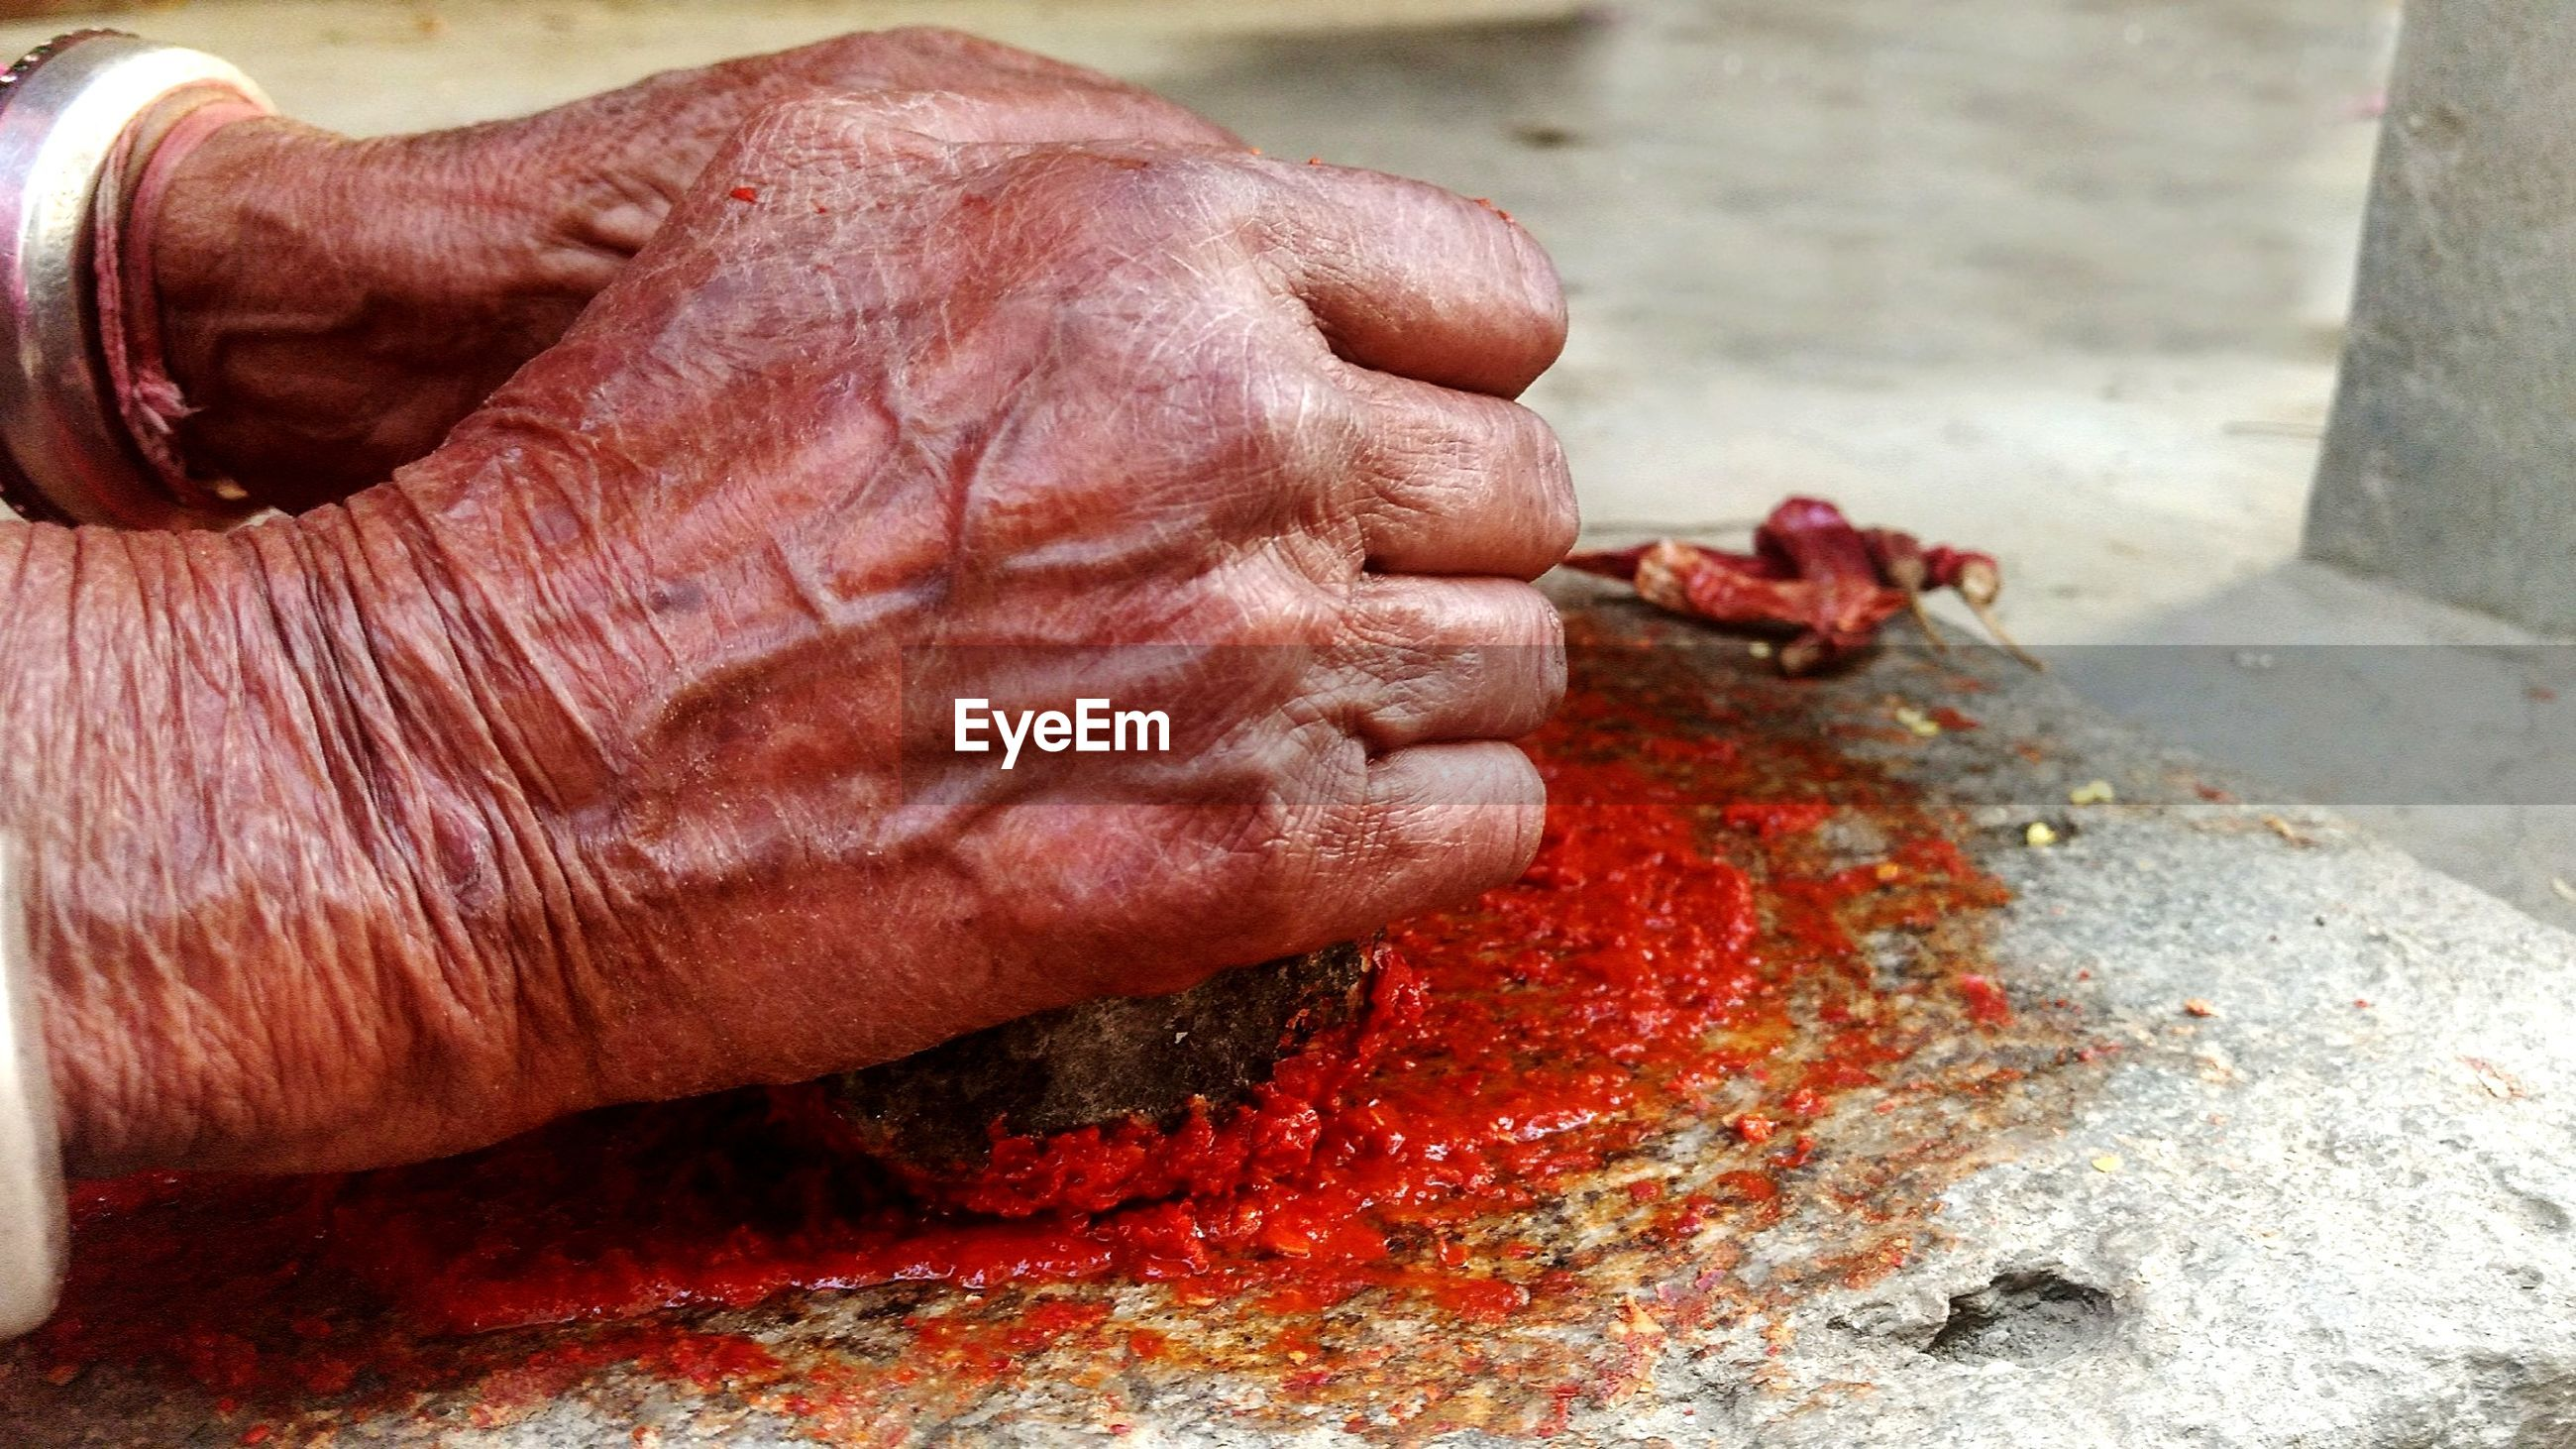 Close-up of hand making chili paste